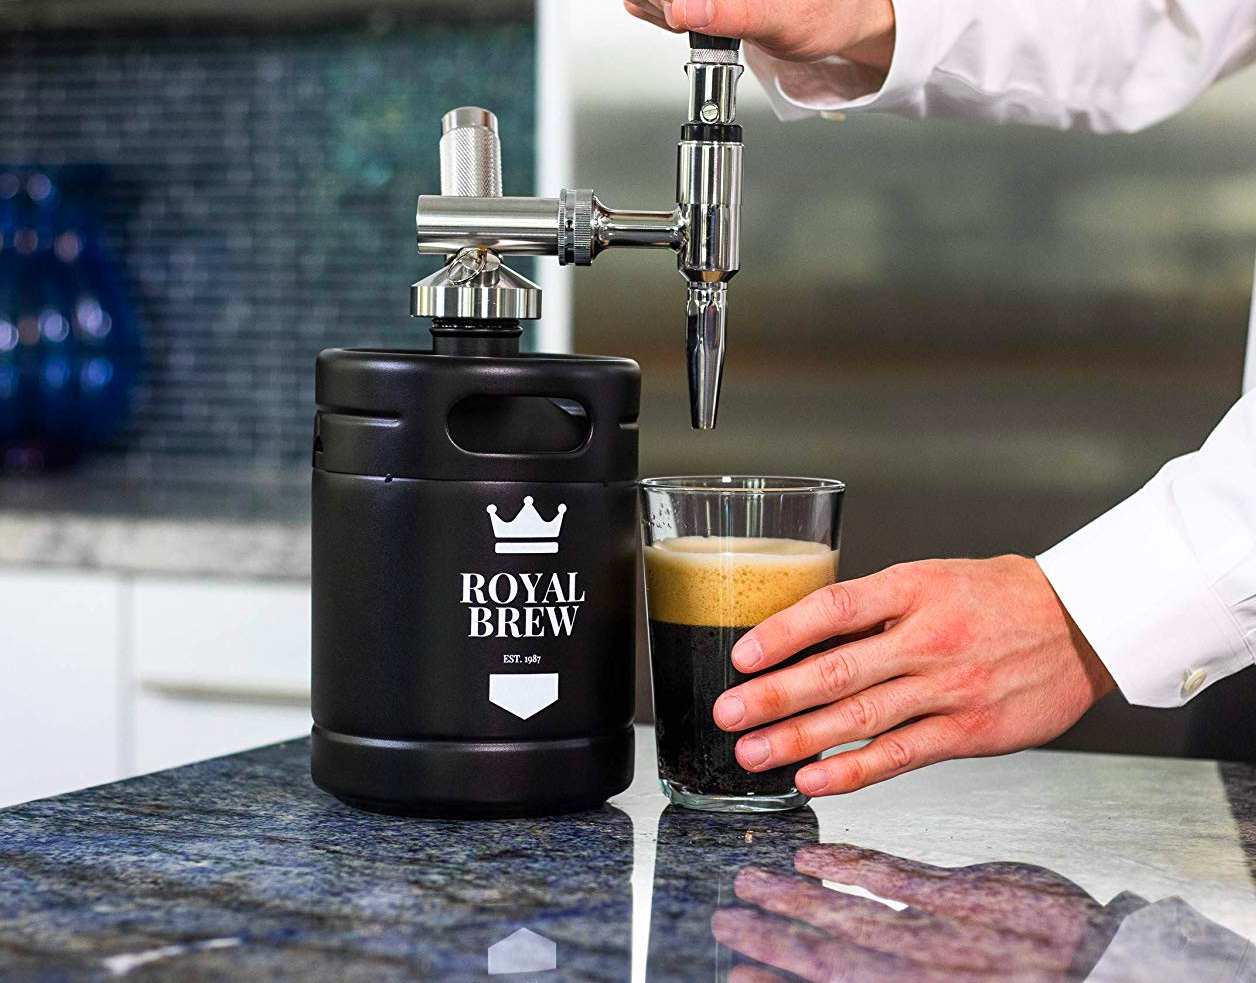 Tap a Caffeinated Keg with Royal Brew's Nitro Cold Brew Coffee System at werd.com